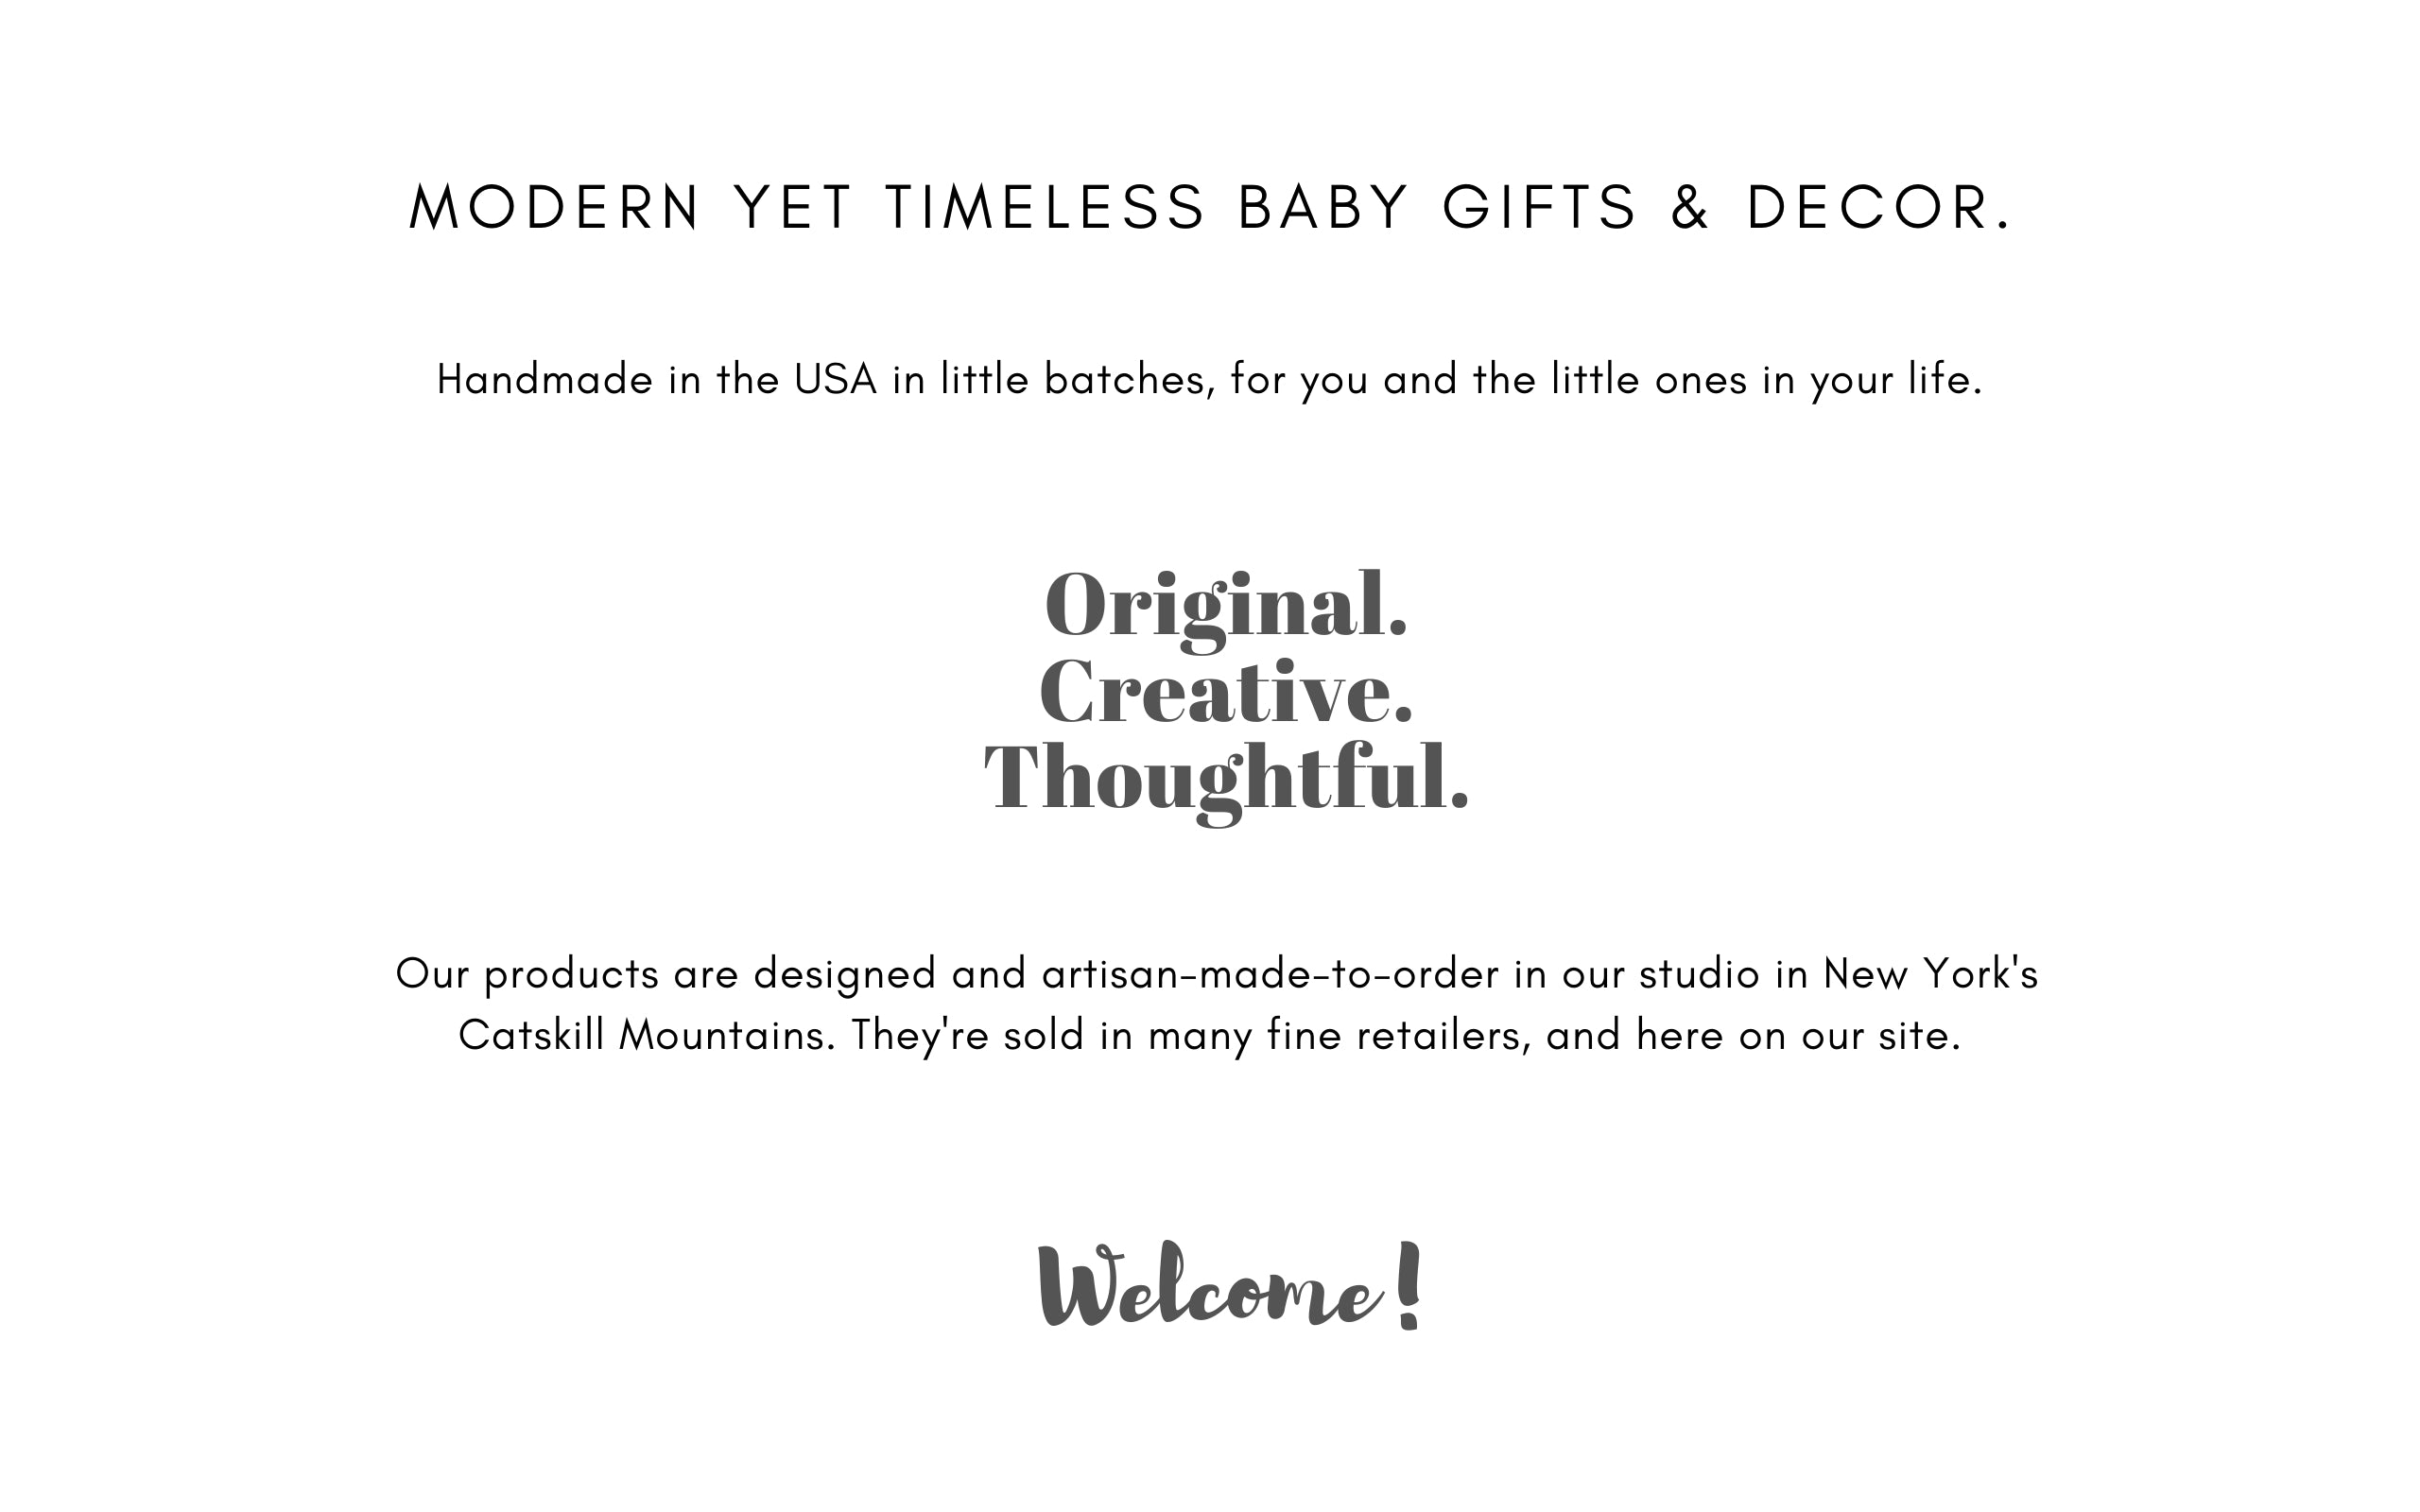 Modern yet timeless baby gifts and nursery and kids room decor. Handmade in the USA in little batches, for you and the little ones in your life. Original, creative, thoughtful. Our products are designed and artisan-made-to-order in our studio in New York's Catskill Mountains. They're sold in many fine retailers, and here on our site. Welcome!